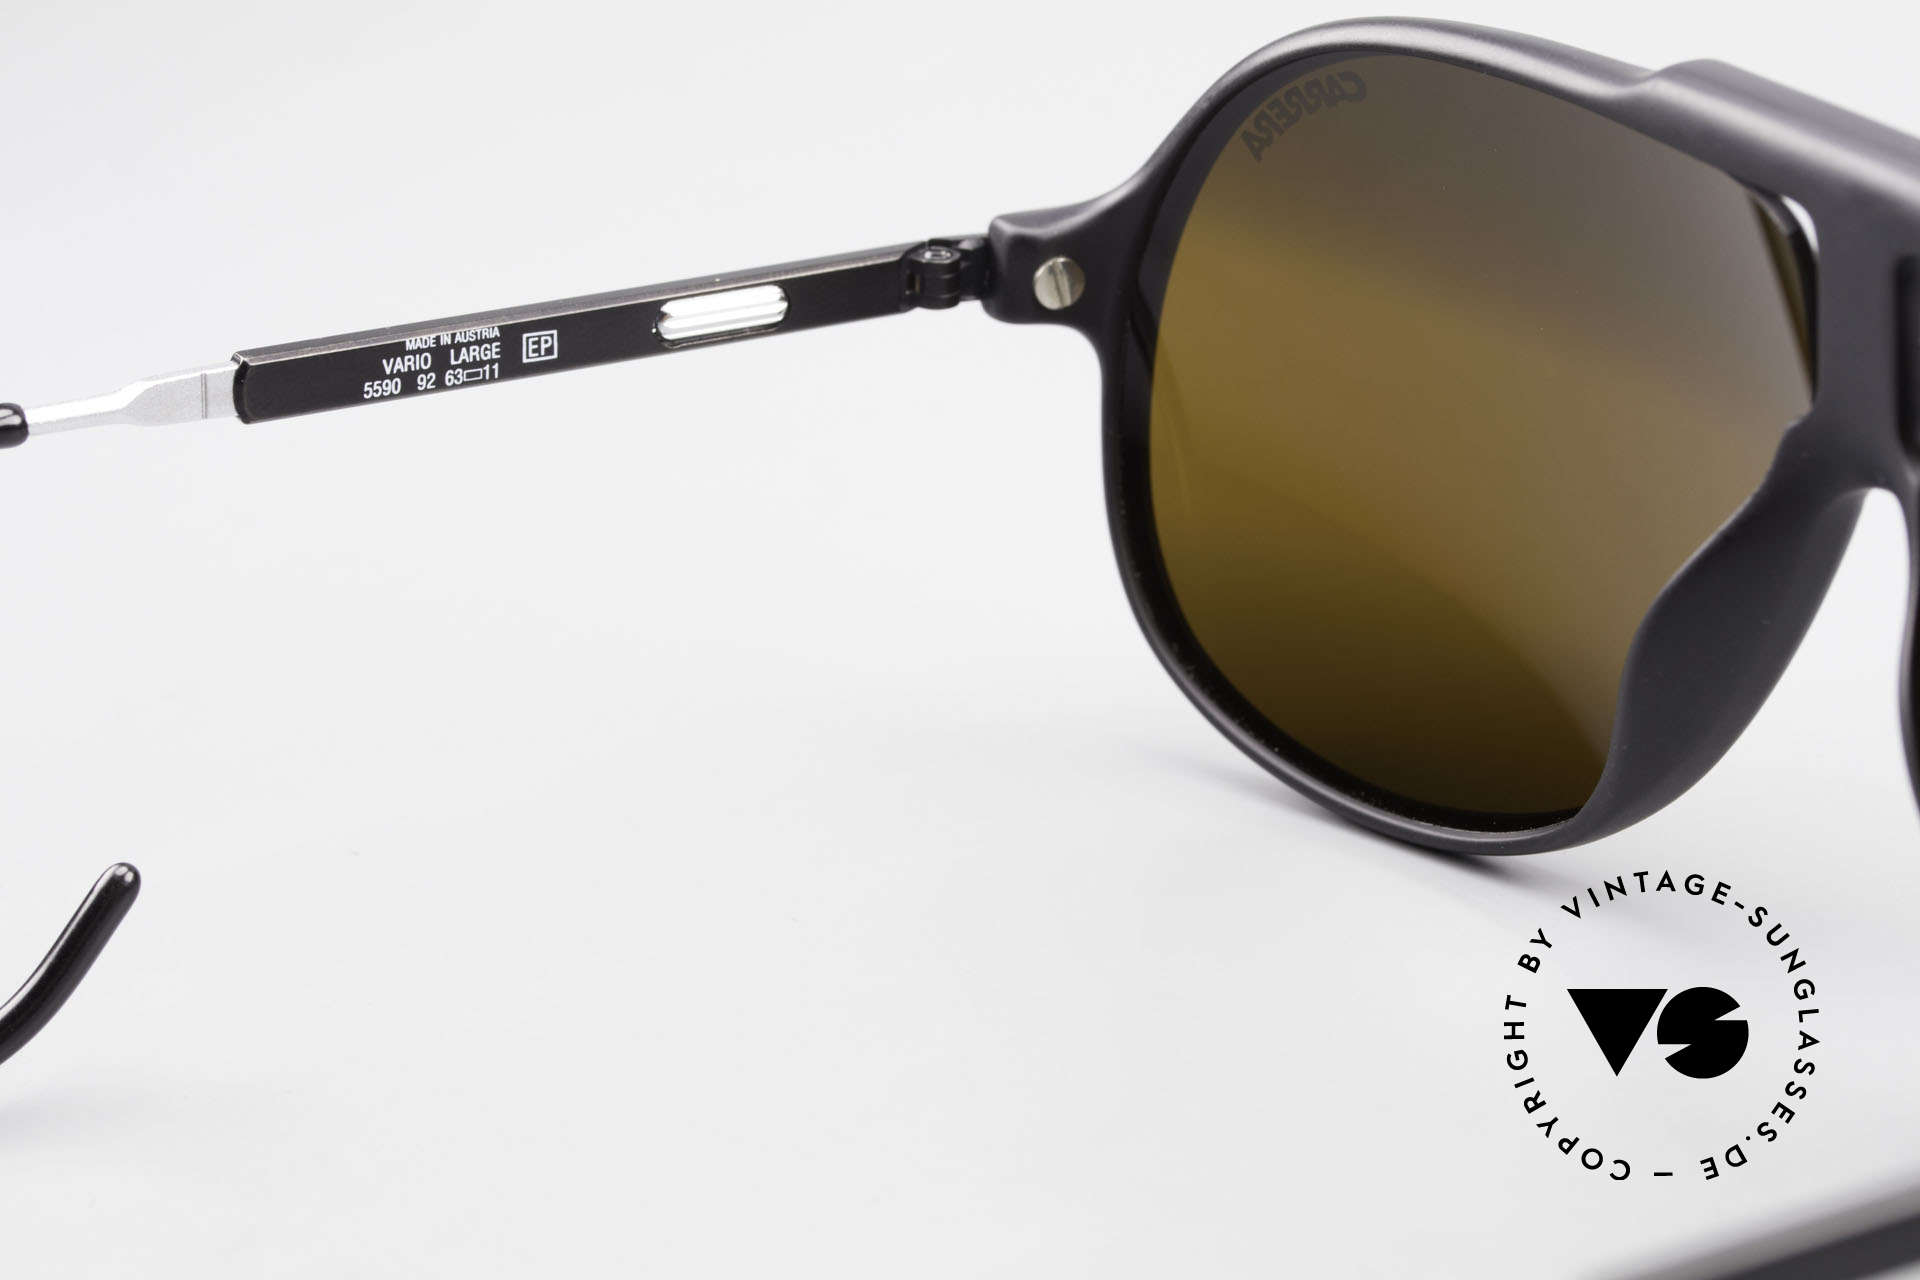 Carrera 5590 Mirrored Vario Sports Temples, NO RETRO SHADES, but an app. 30 years old ORIGINAL!, Made for Men